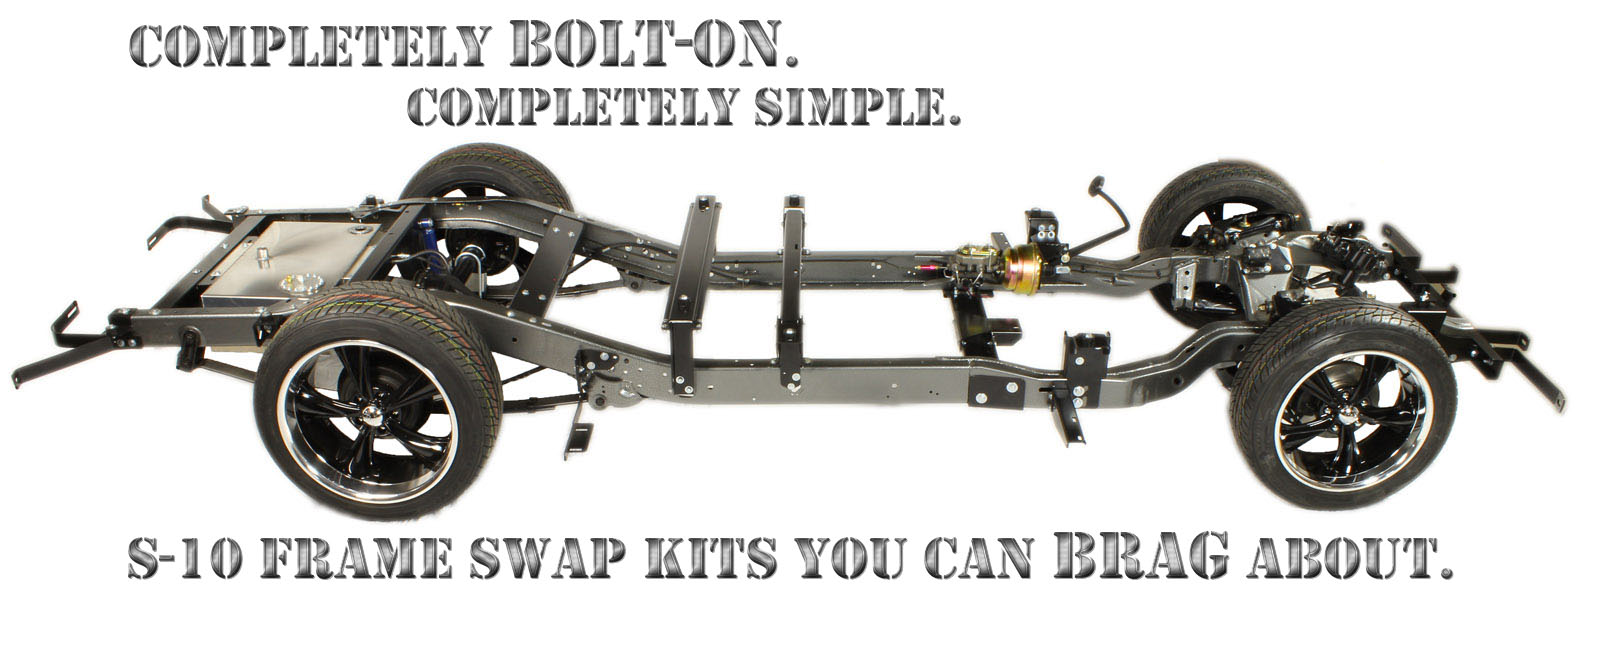 1950 Chevy Truck Frame Swap Page 3 Frame Design